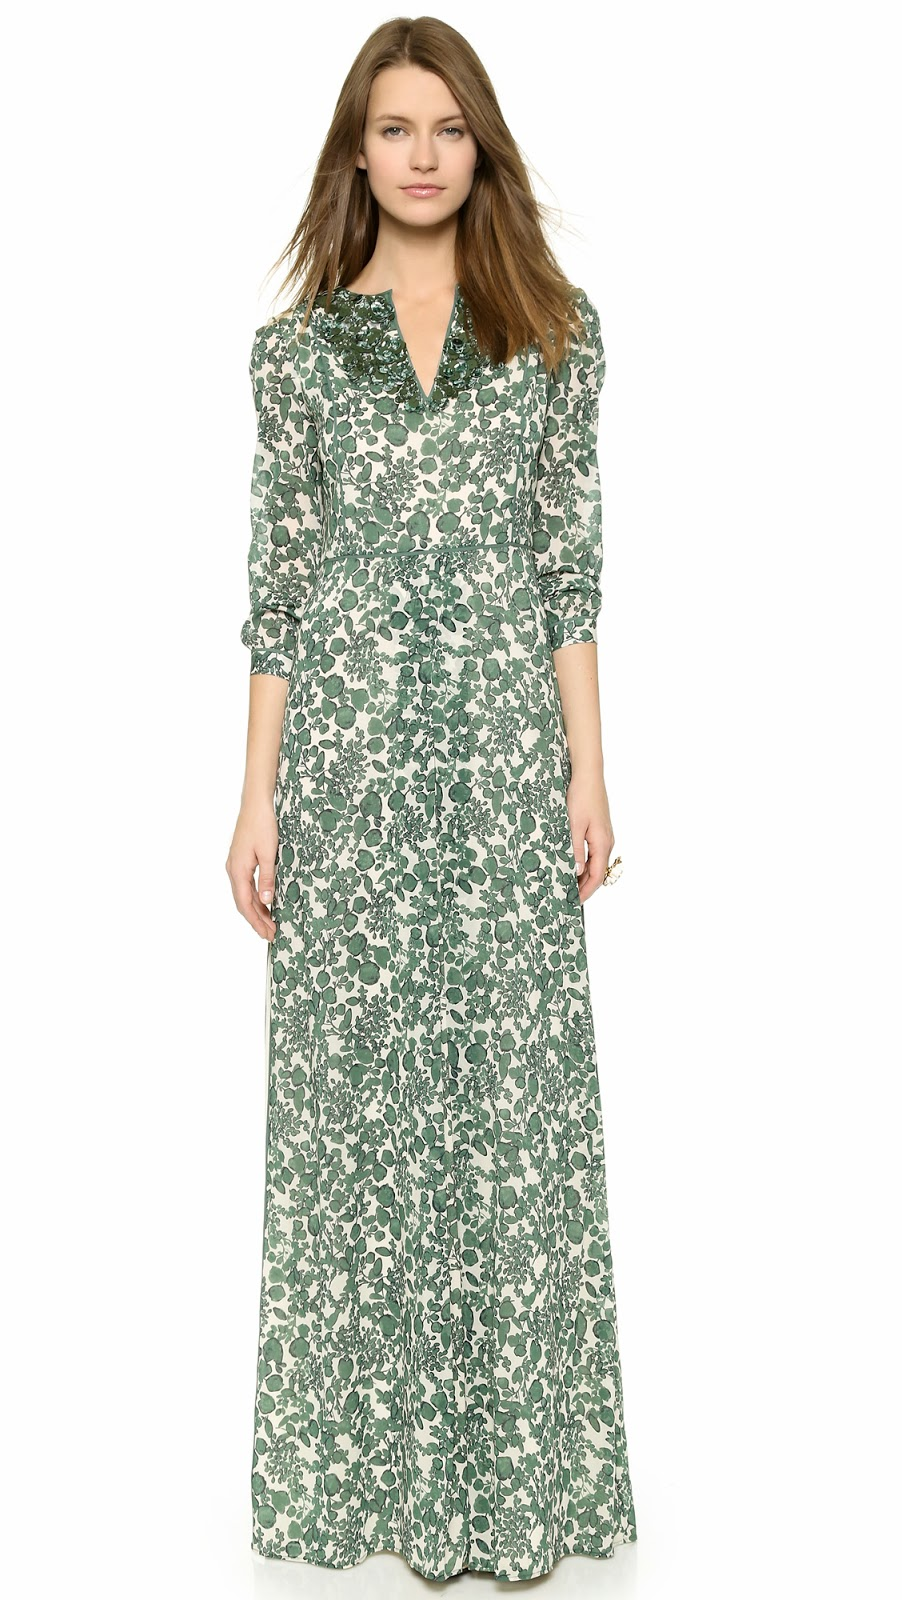 Tory Burch modest dress long sleeve printed maxi dress  |  Follow Mode-sty for stylish modest clothing tznius orthodox jewish muslim hijab mormon lds pentecostal islamic evangelical christian